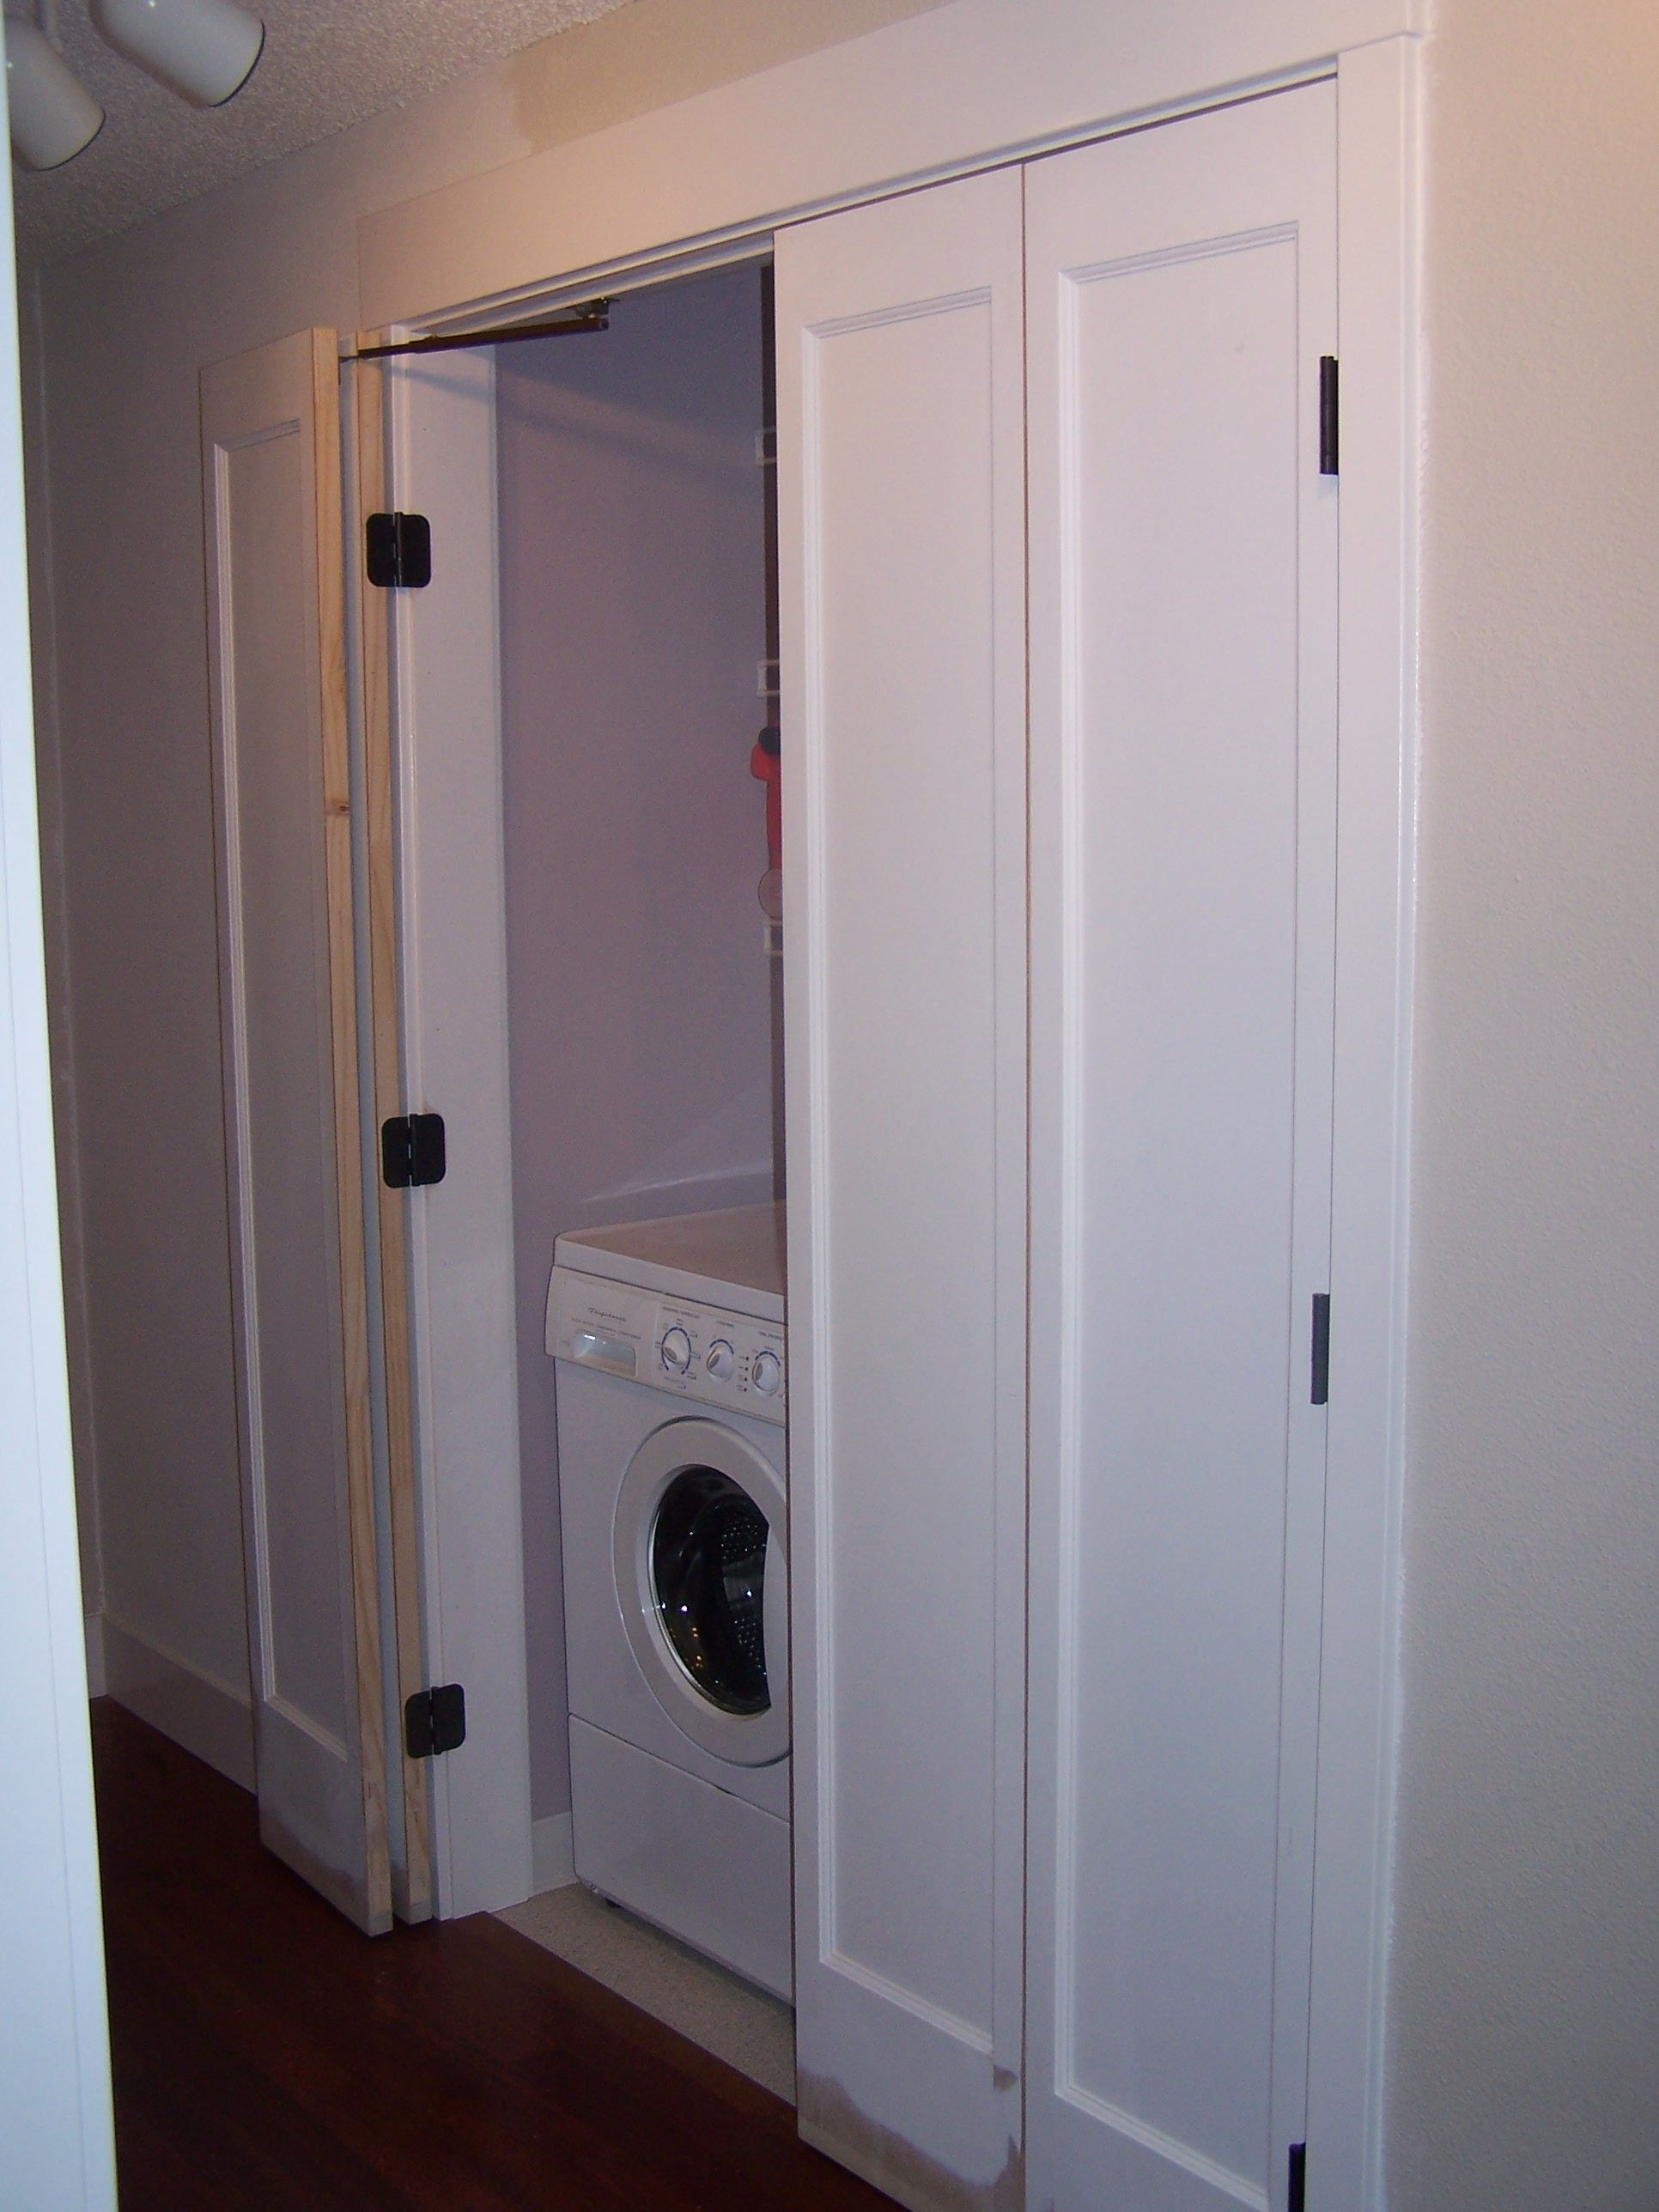 Laundry Room Doors Folding Closet Doors Laundry Doors Laundry